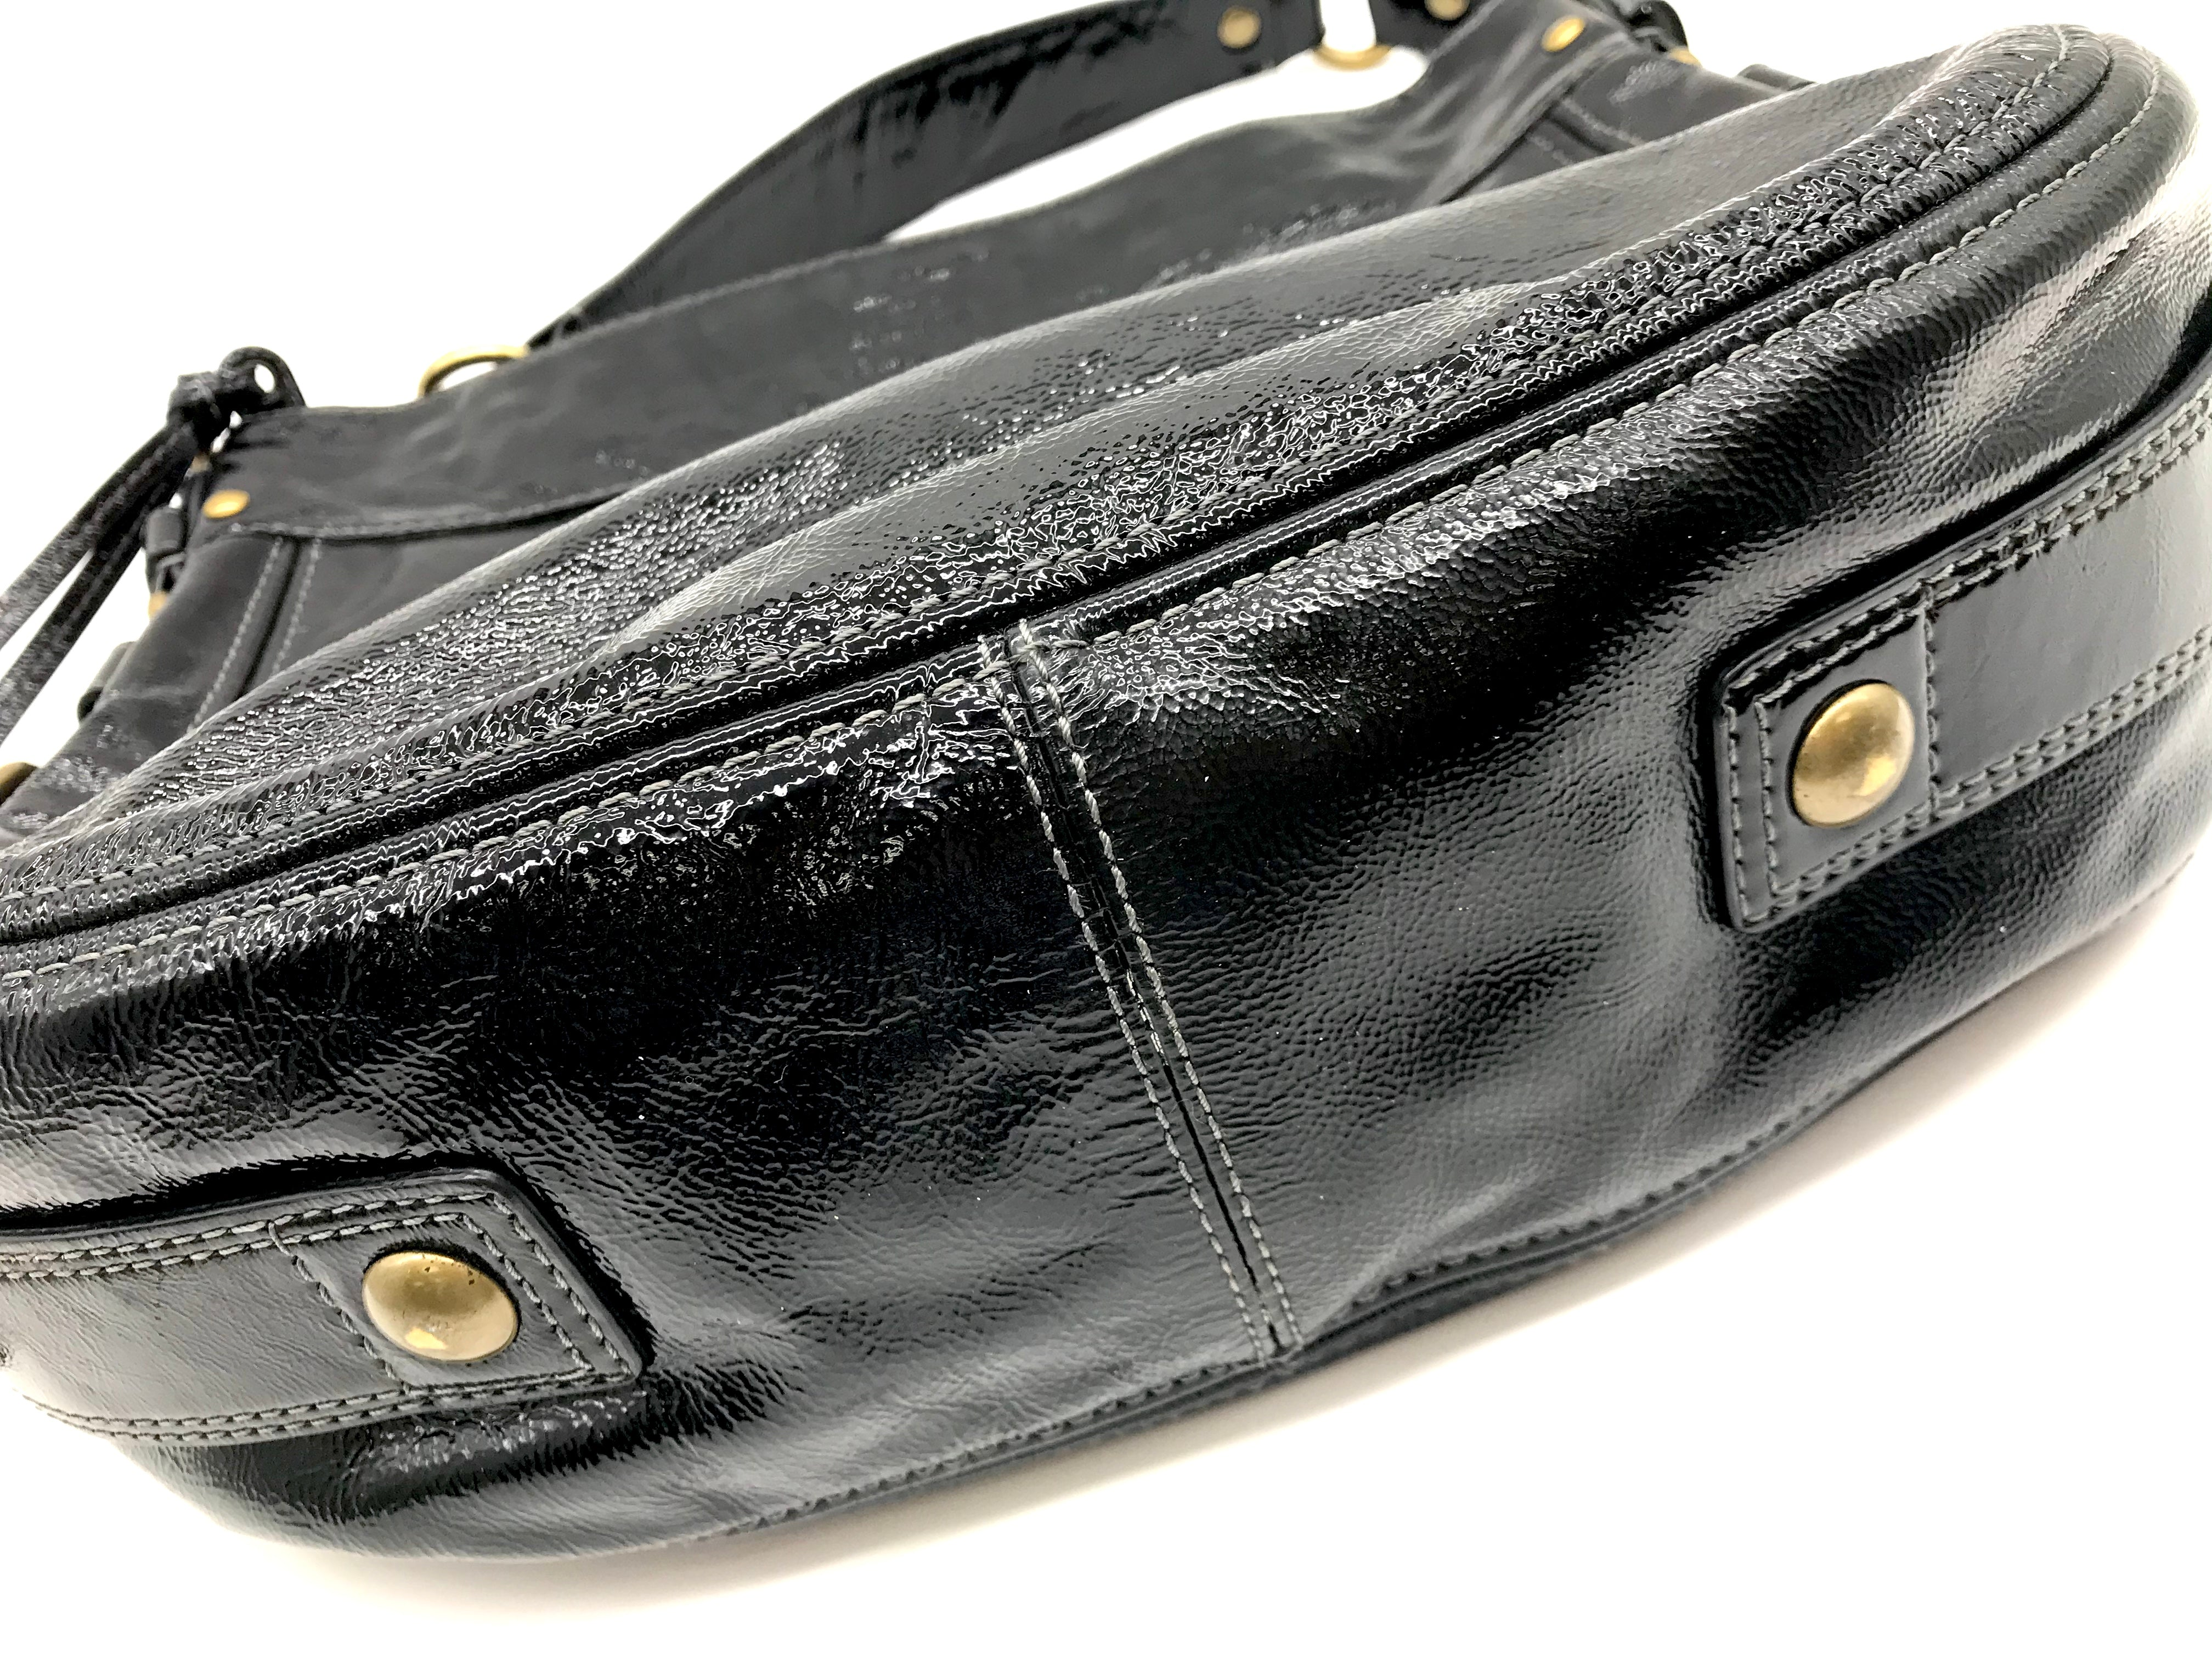 Photo #3 - BRAND: COACH <BR>STYLE: HANDBAG DESIGNER <BR>COLOR: BLACK <BR>SIZE: LARGE <BR>SKU: 262-26275-64721<BR>GENTLE WEAR SHOWS, CRACKS AROUND THE EDGES OF THE STRAP AND SOME STAIN SPOTS ON THE INTERIOR LINING. OVERALL IN GOOD SHAPE AND CONDITION. <BR>DESIGNER BRAND - FINAL SALE